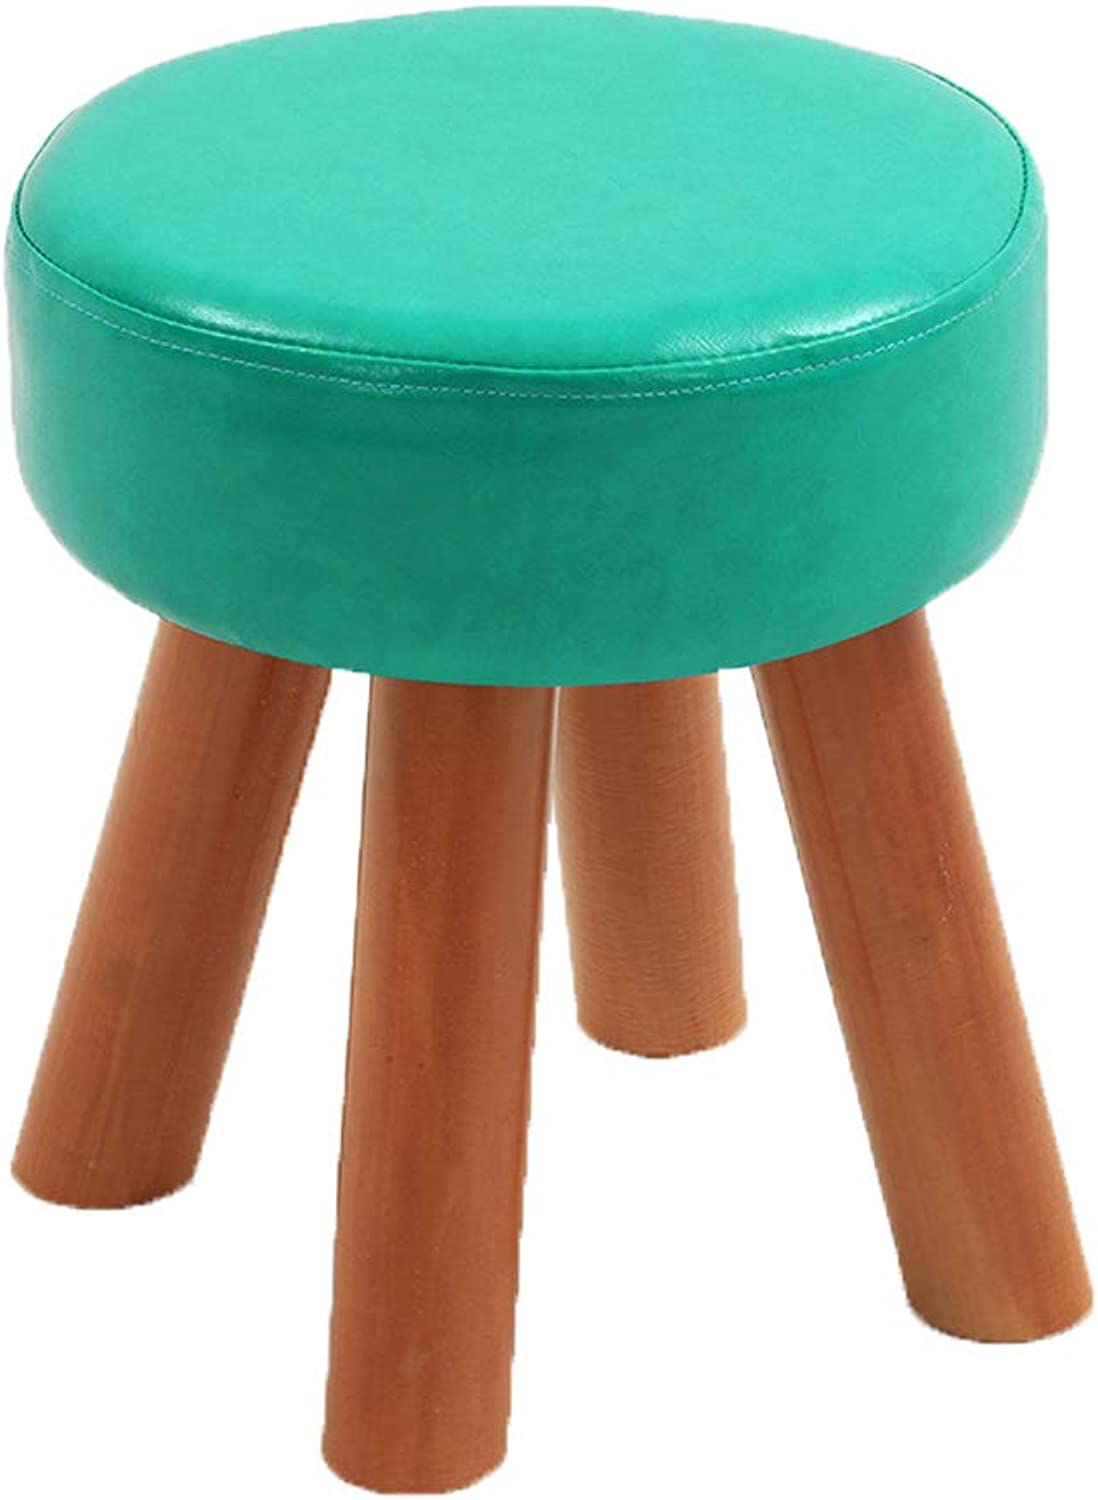 HLJ Comfortable Fashion Sofa Bench and Change shoes Stool Creative Leather Tea Table Stool Simple Solid Wood Home Stool (Size   28  32cm)